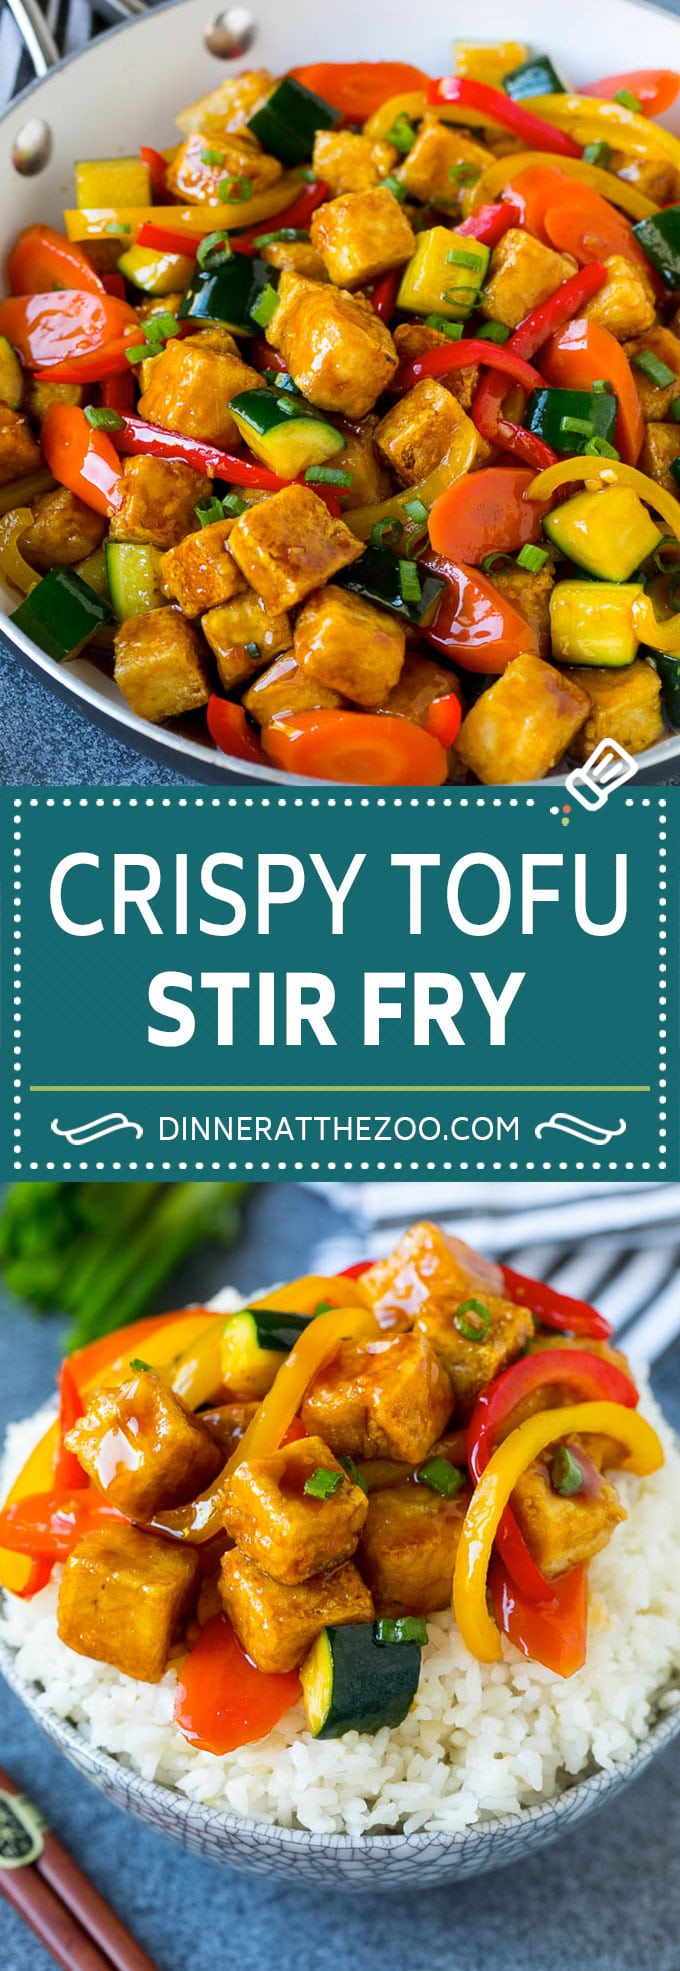 Tofu Stir Fry Recipe | Crispy Tofu | Tofu and Vegetables | Vegetable Stir Fry #tofu #vegetarian #stirfry #zucchini #dinner #meatless #dinneratthezoo